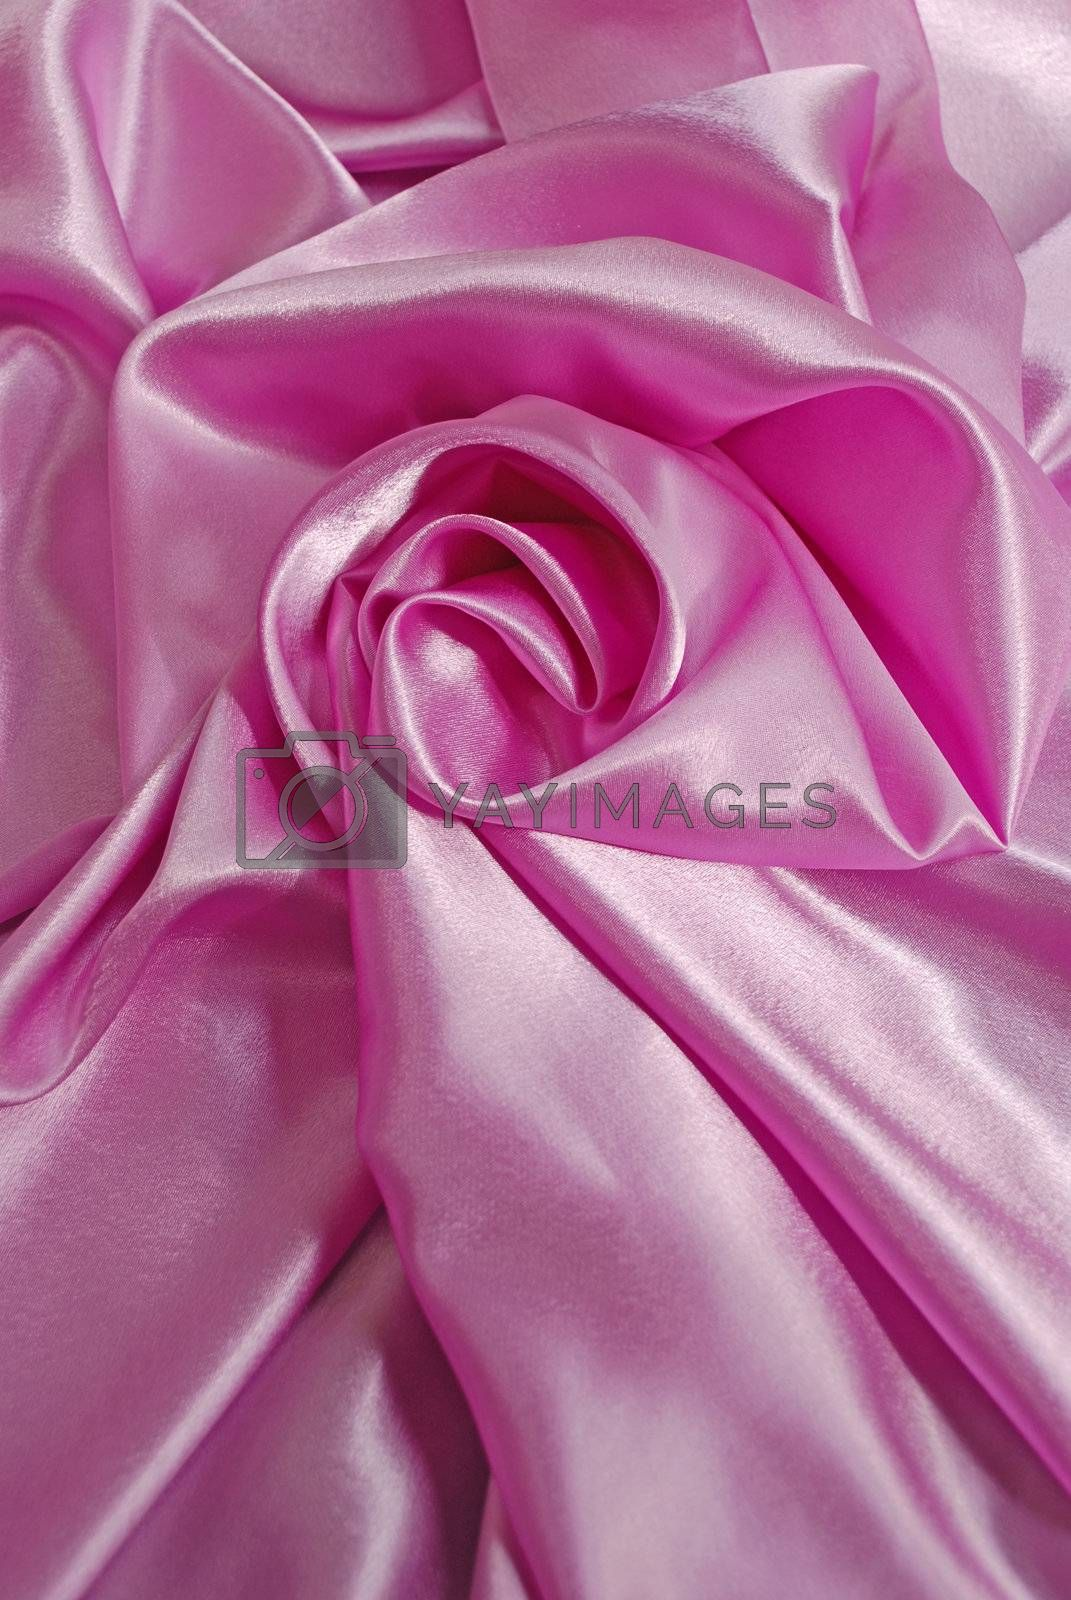 Pink satin with folds